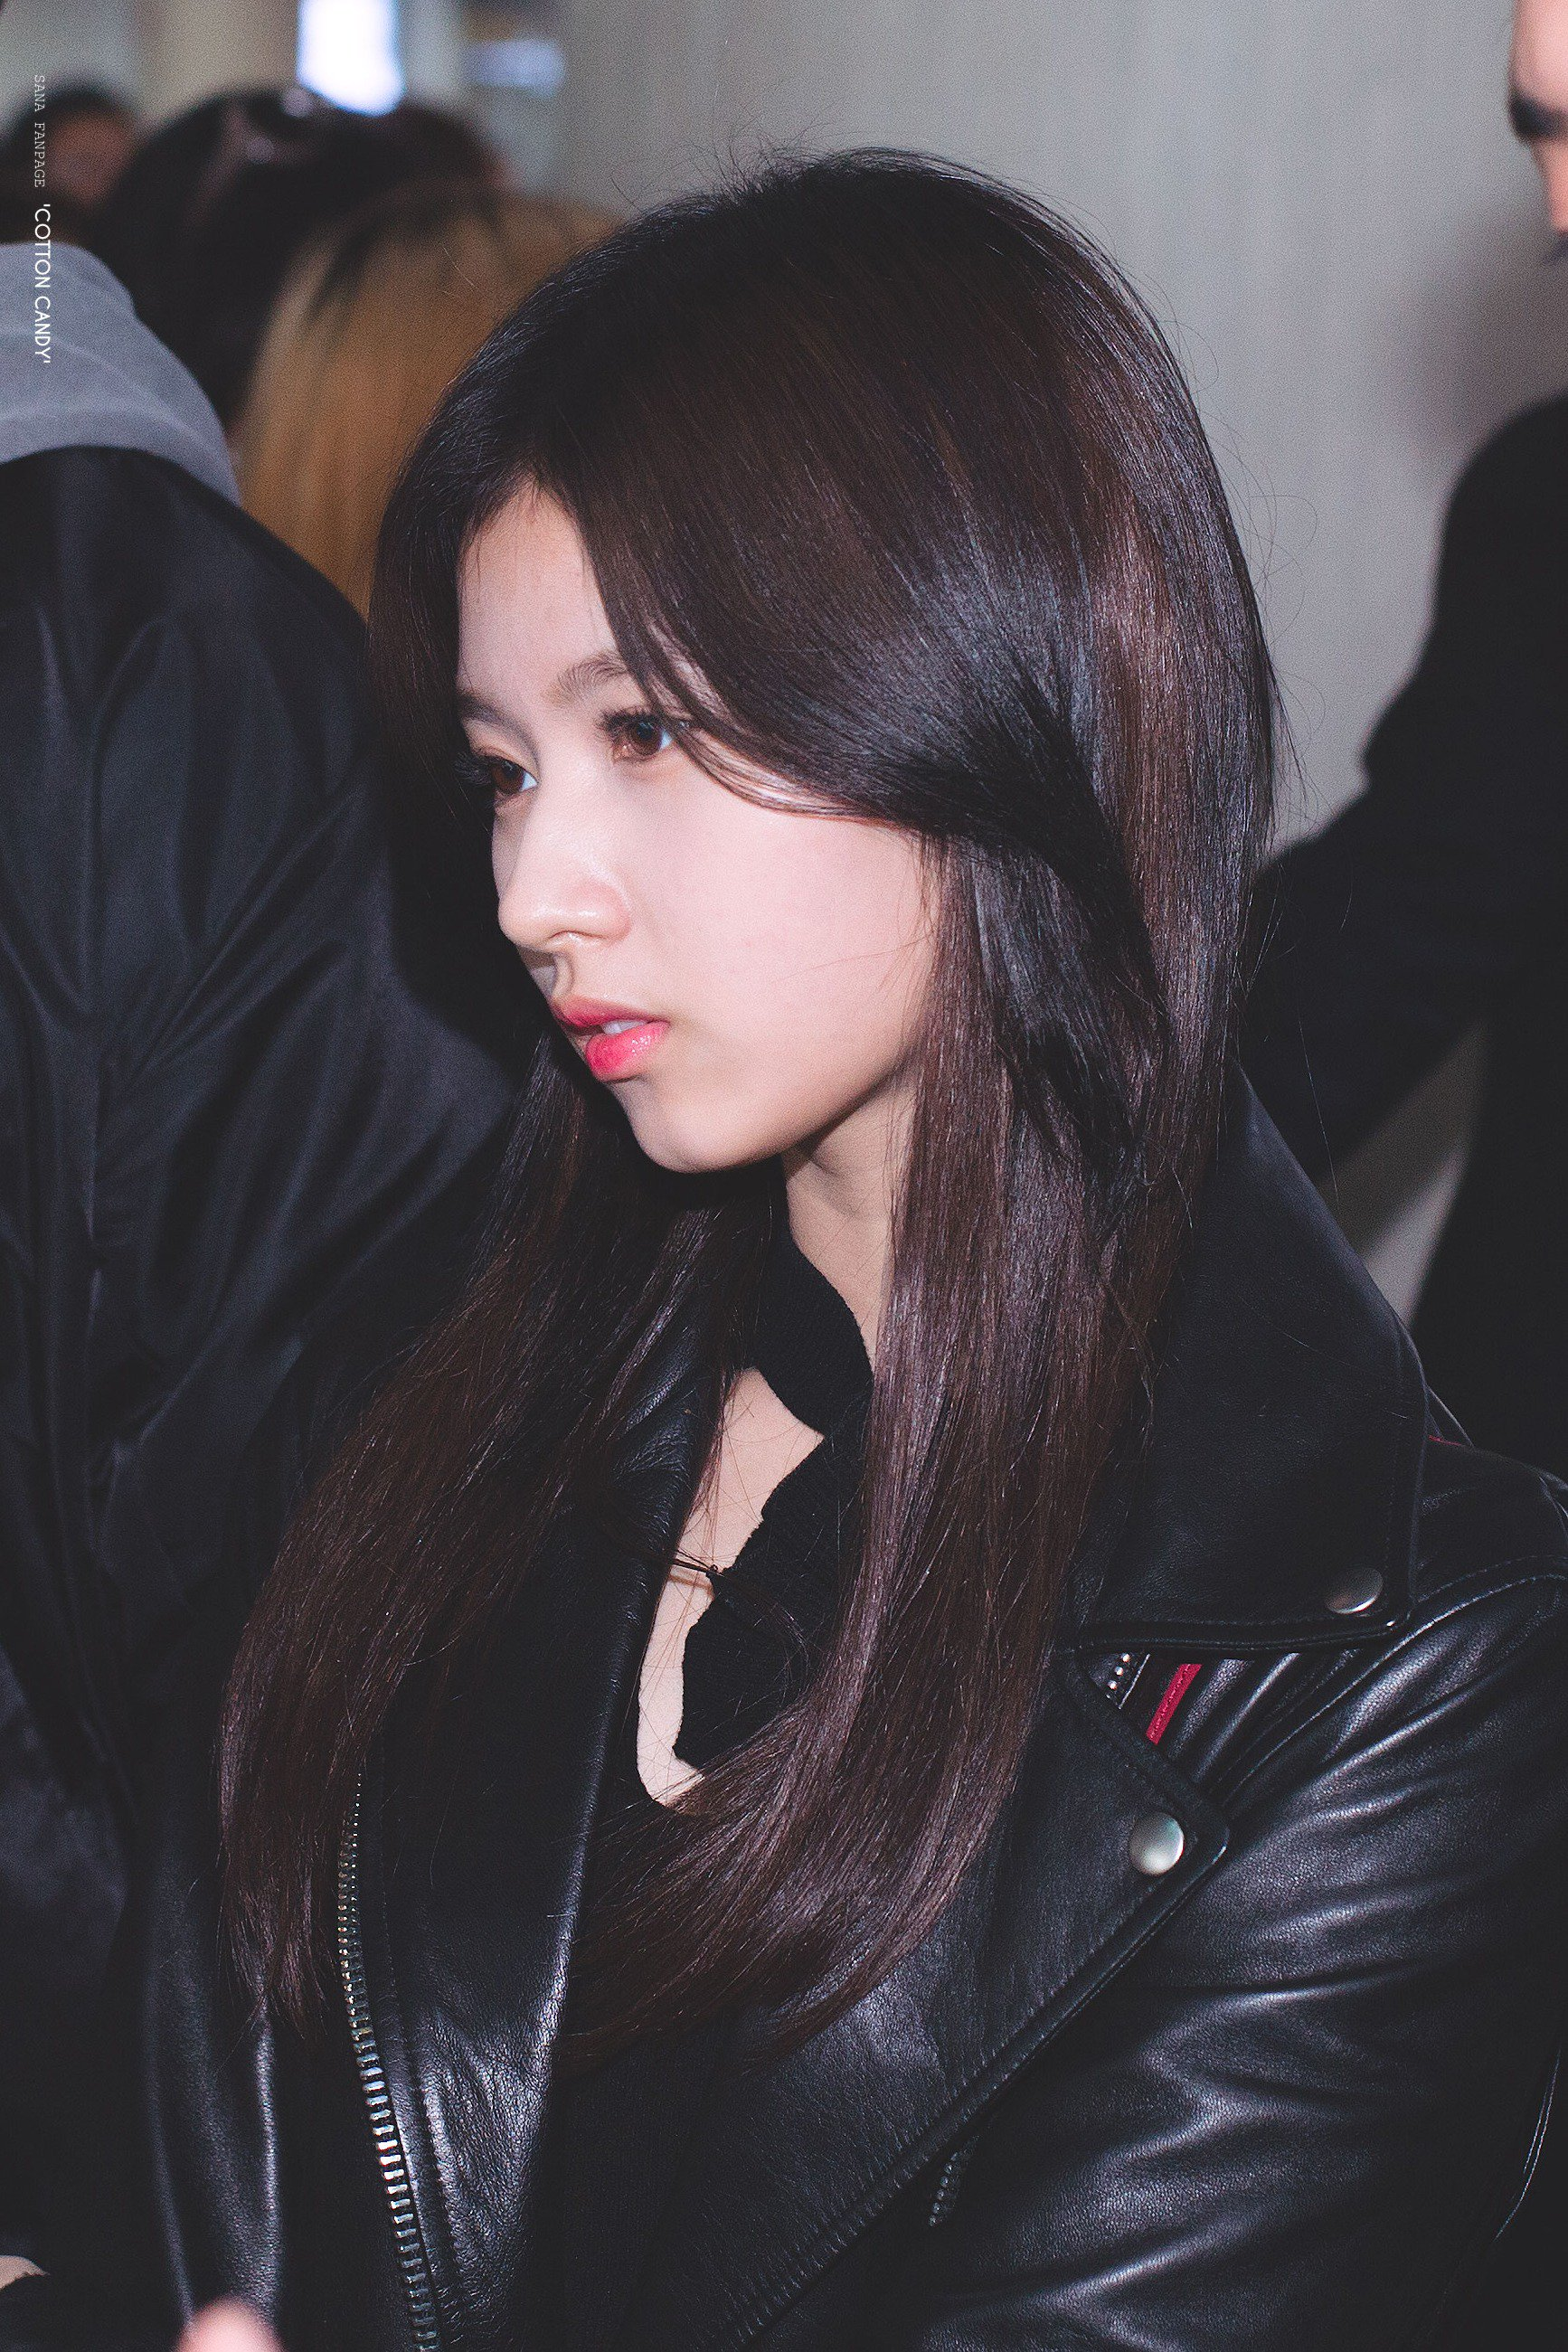 TWICE Sana Profile, TWICE Sana, TWICE Sana All Black